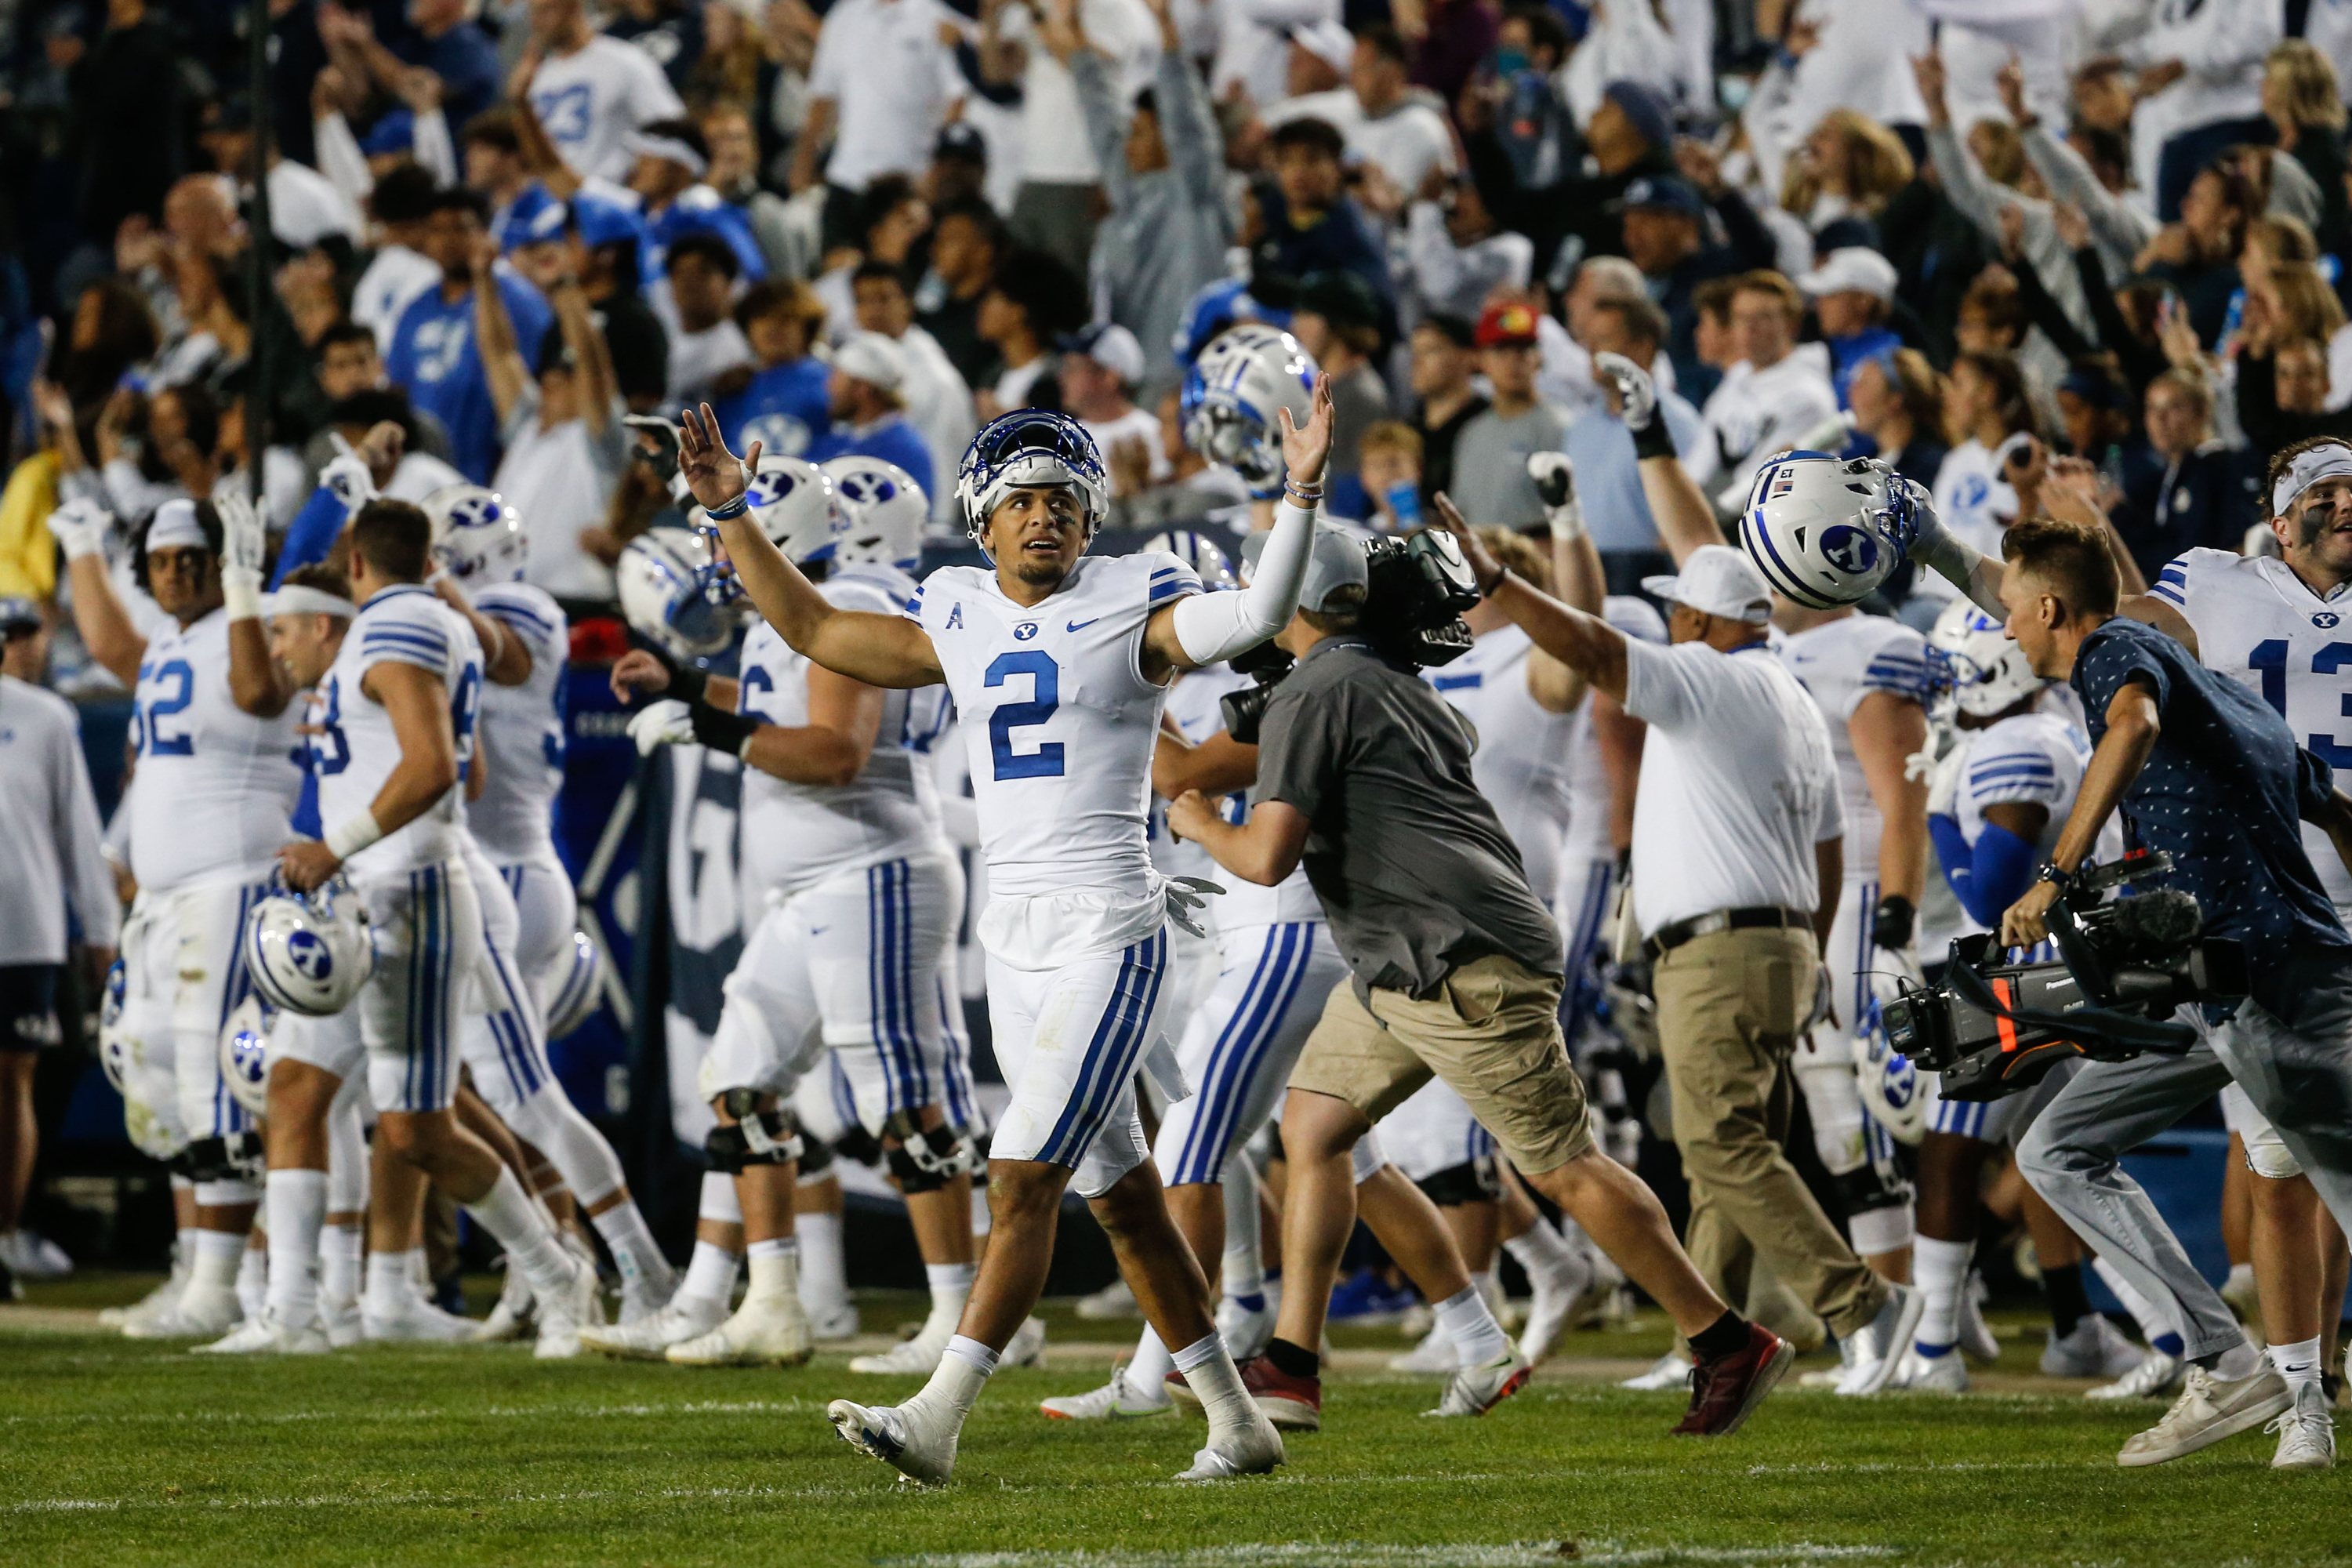 BYU players celebrate after defeating Arizona State at LaVell Edwards Stadium in Provo on Saturday, Sept. 18, 2021.